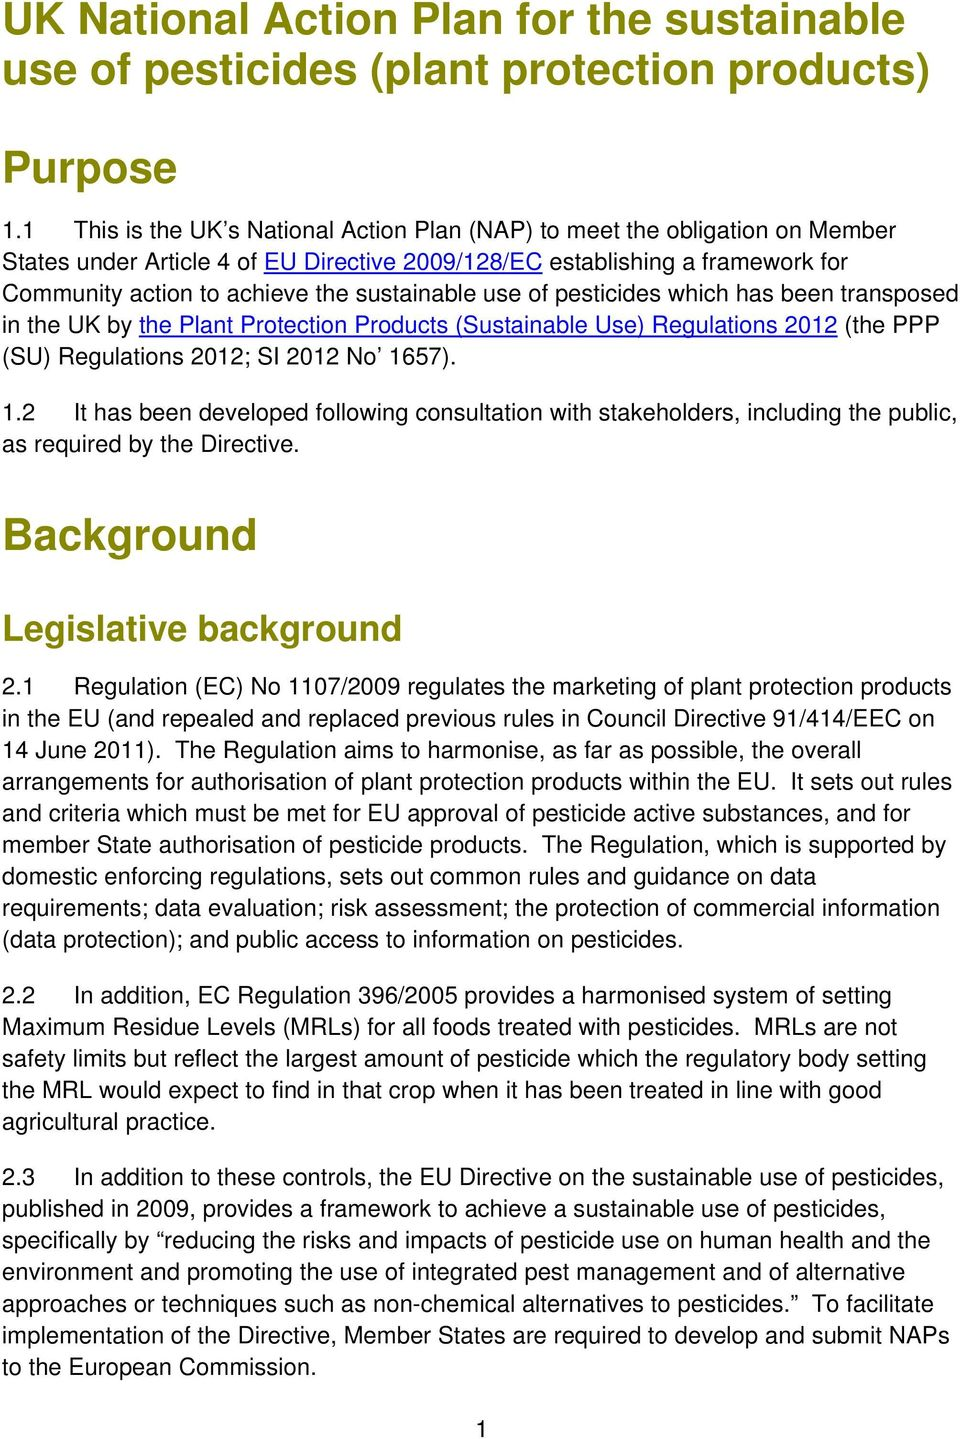 sustainable use of pesticides which has been transposed in the UK by the Plant Protection Products (Sustainable Use) Regulations 2012 (the PPP (SU) Regulations 2012; SI 2012 No 16